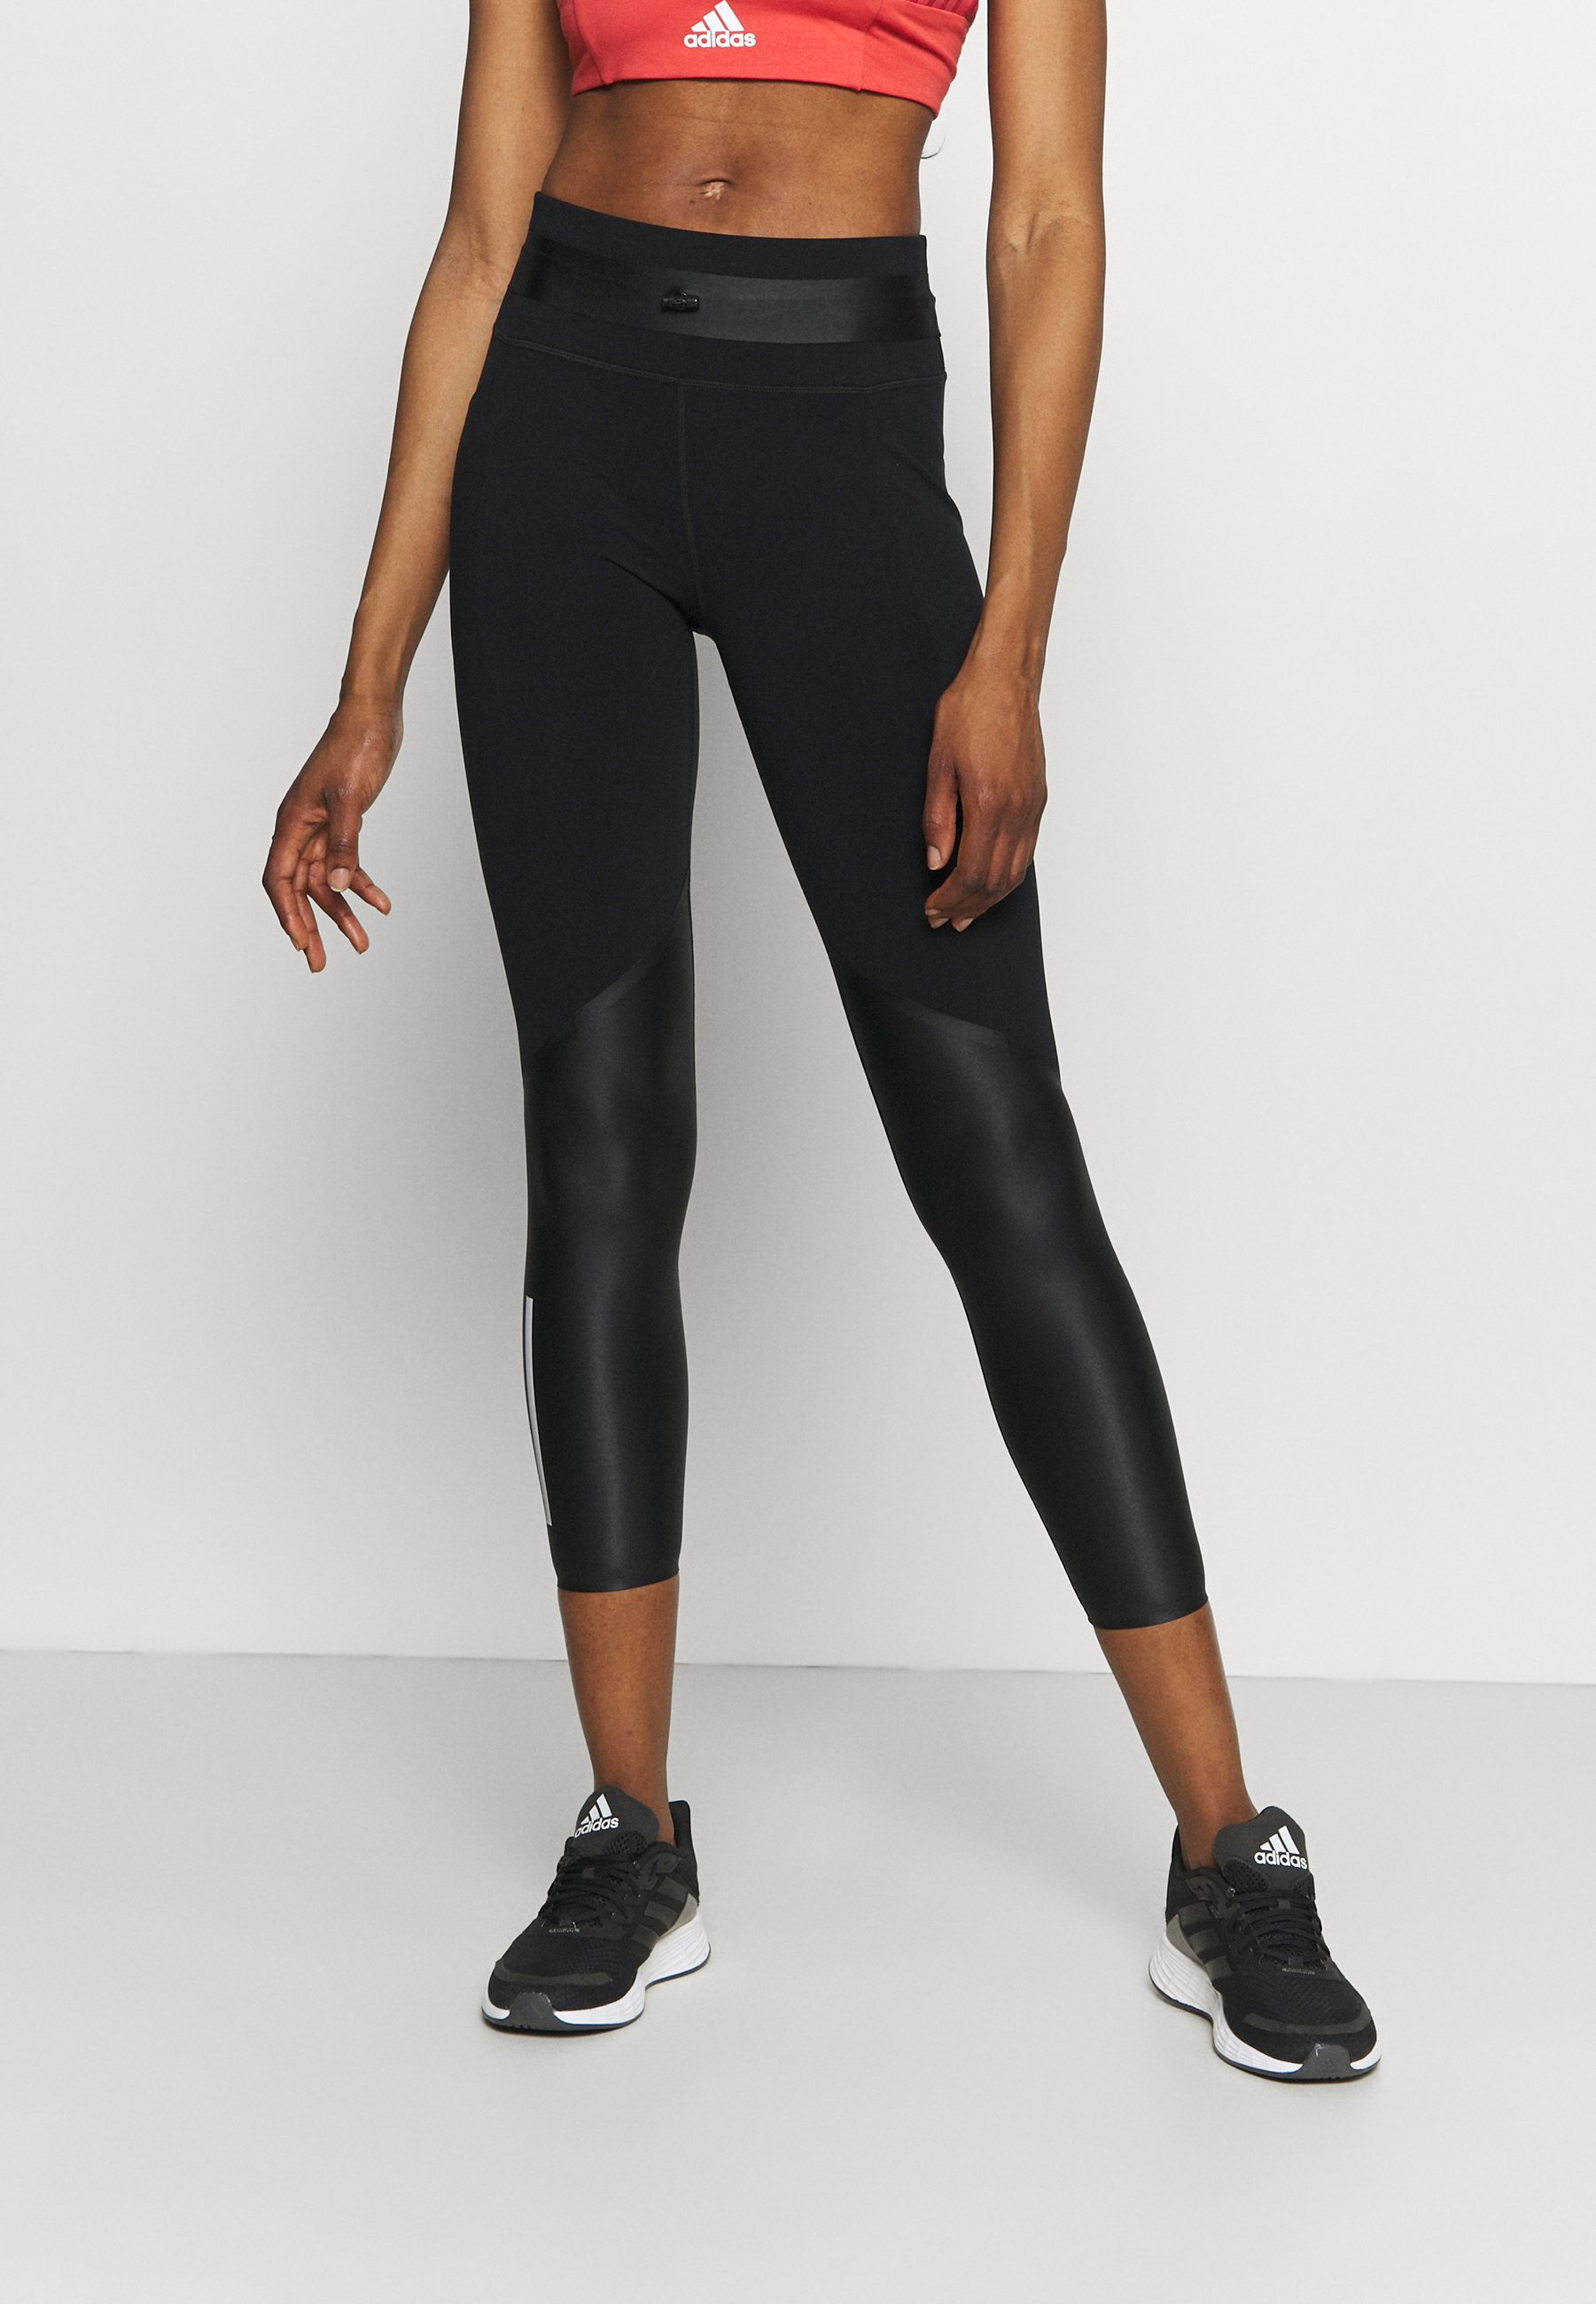 Donna POWER MISSION 7/8 WORKOUT LEGGINGS - Collant